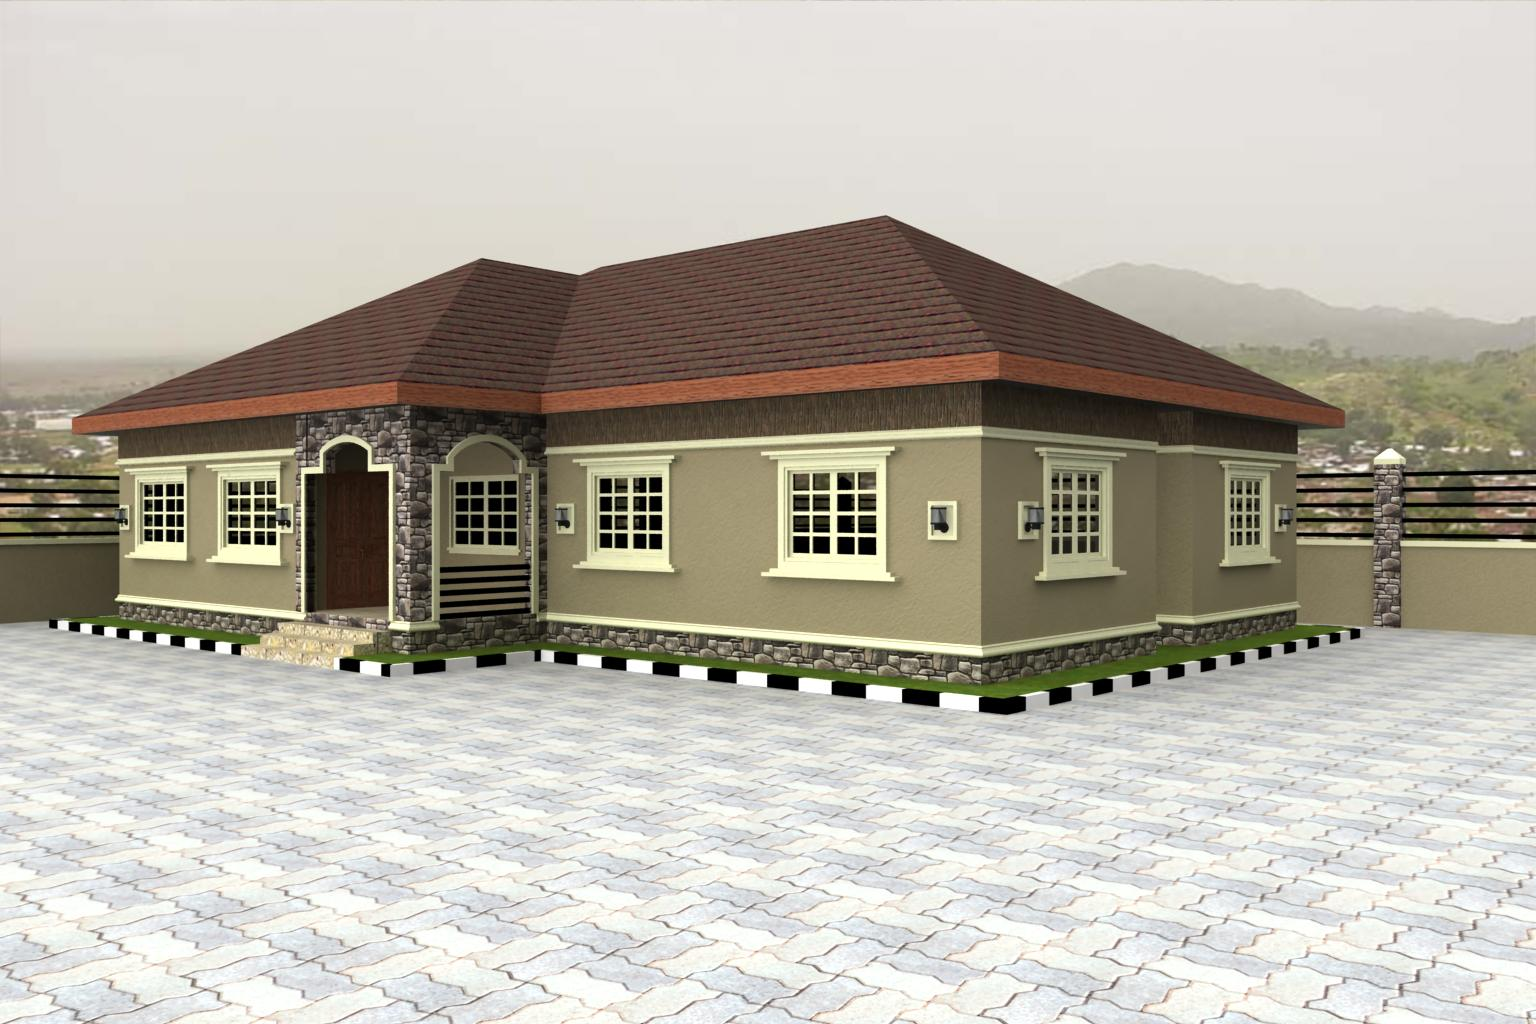 Home plans for bungalows in nigeria properties 4 for 5 bedroom bungalow house plans